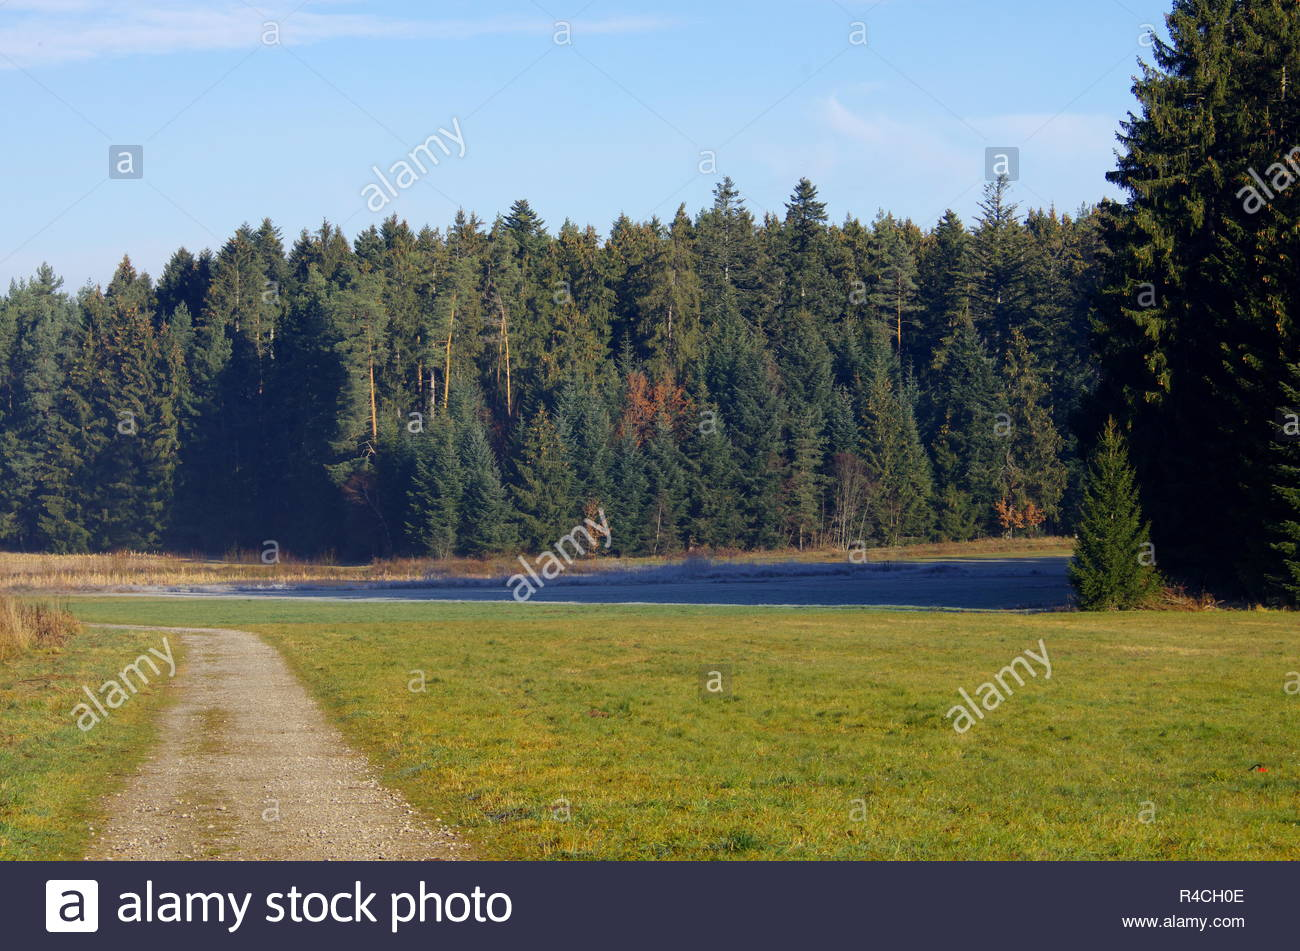 The natural habitat of meadows and trees - Stock Image